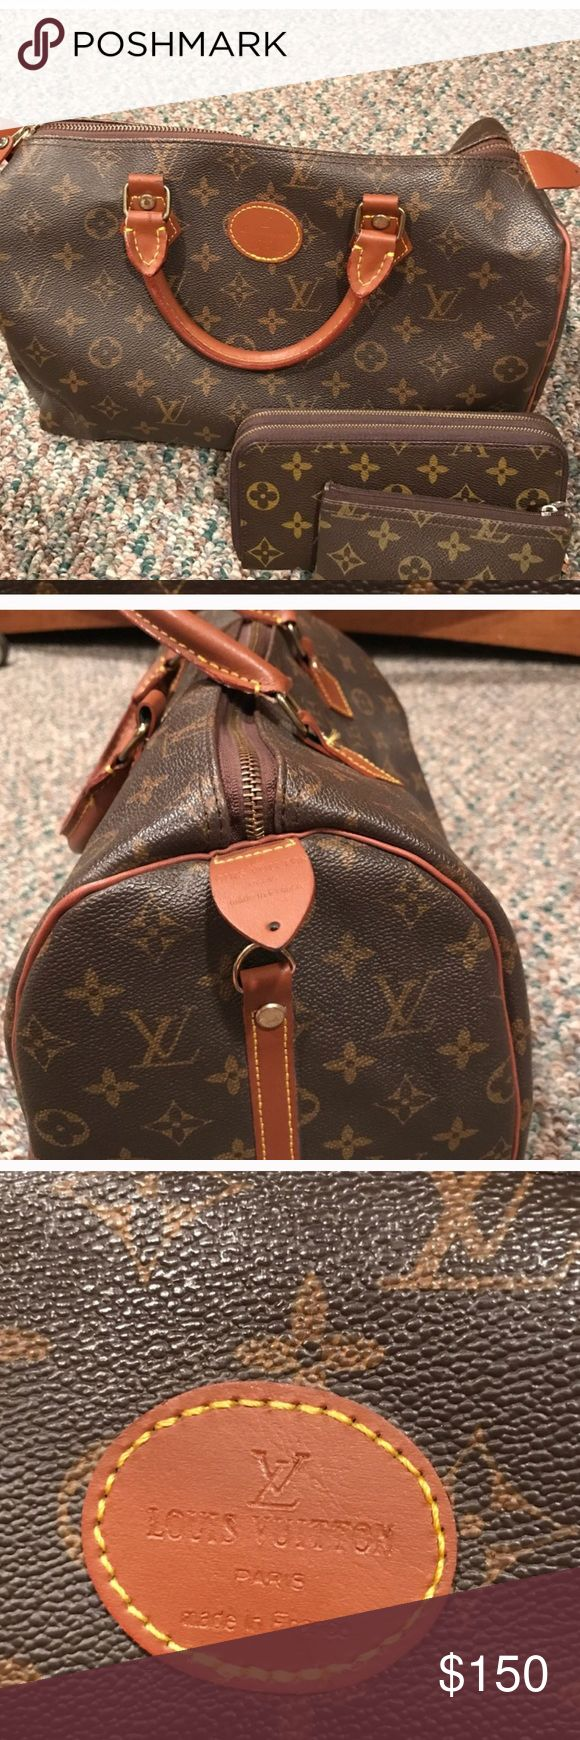 Bundle LX purse all three pieces included This is high quality non authentic purse, price includes all three pieces. Bags